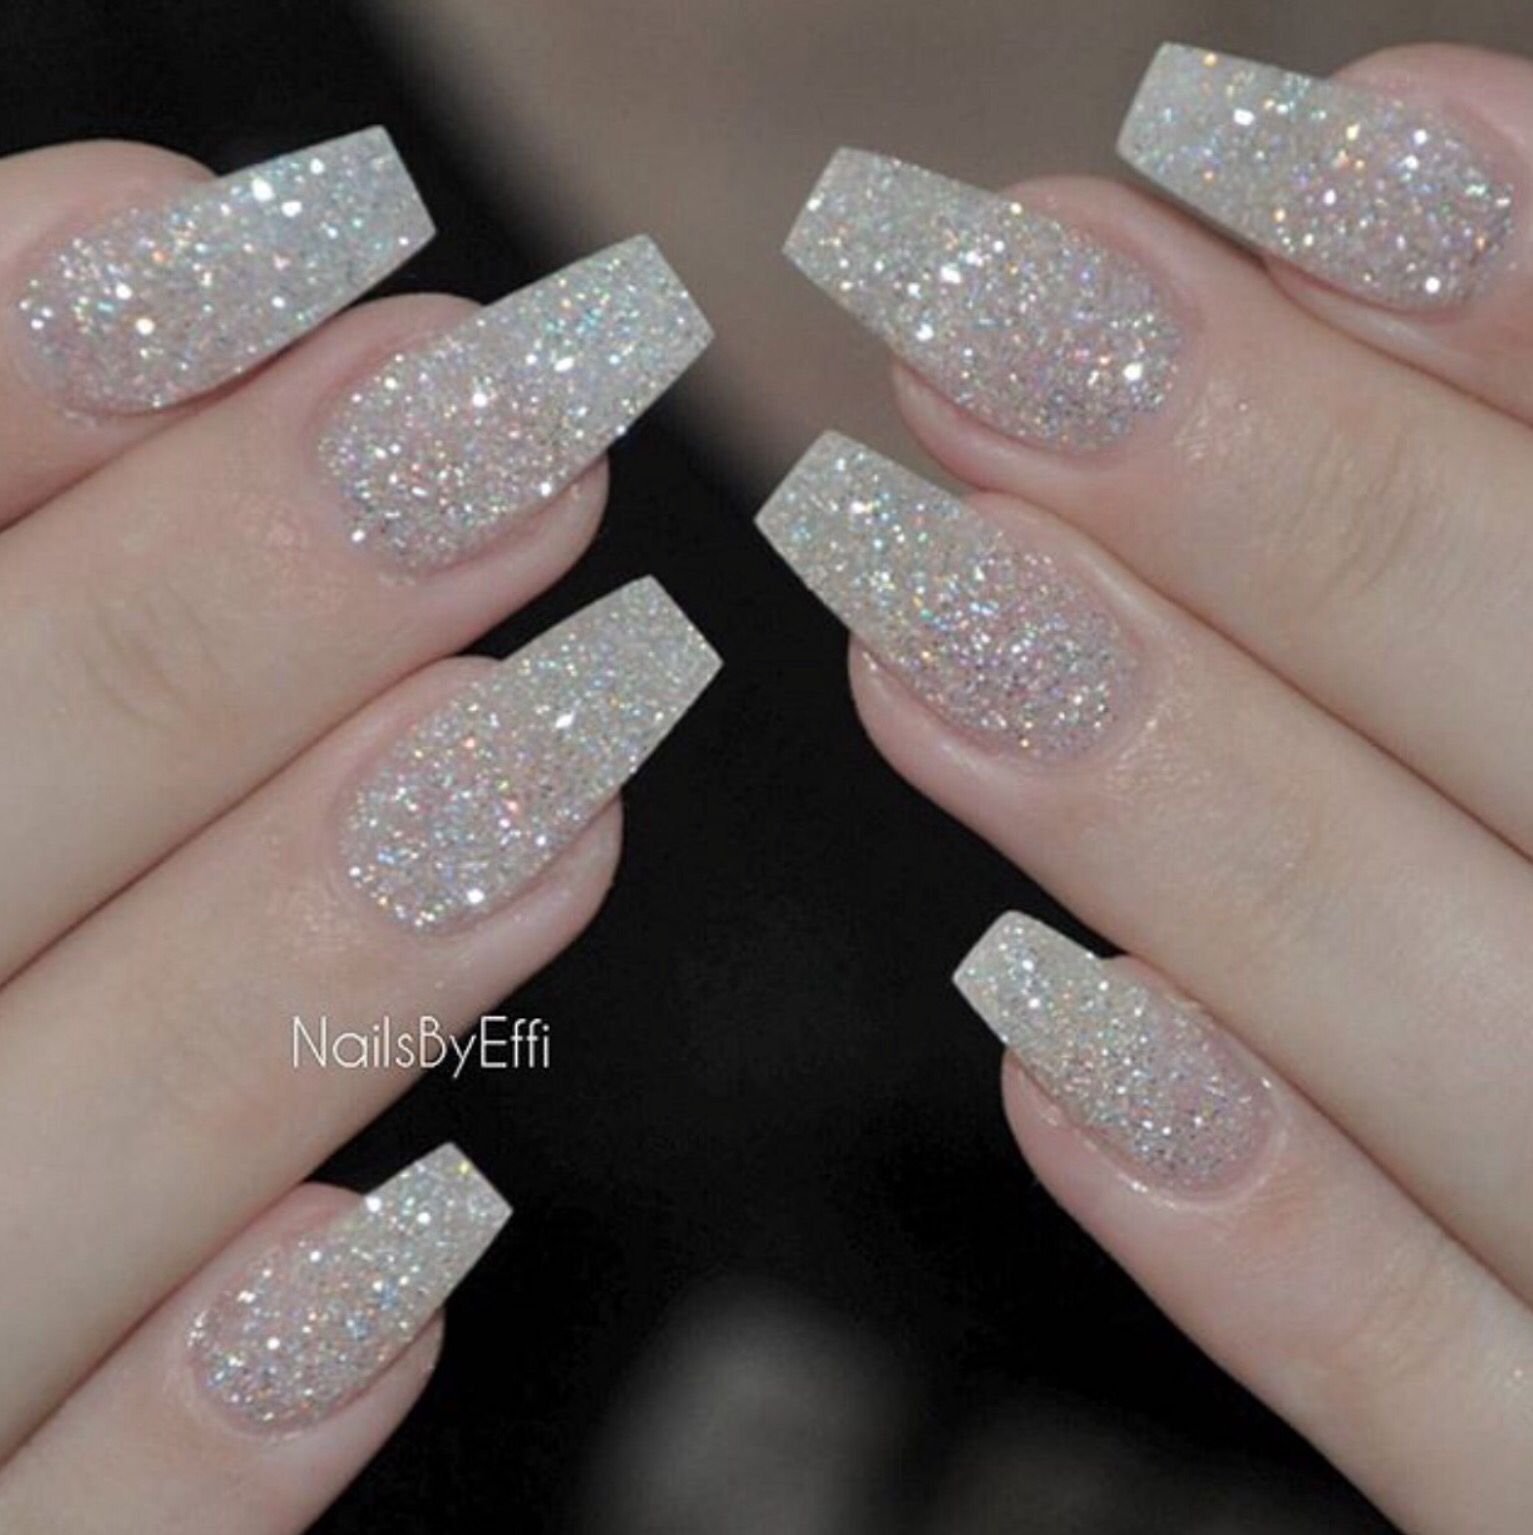 Glitter Nails - Glitter Nails Nails In 2018 Nails, Nail Art, Glitter Nails